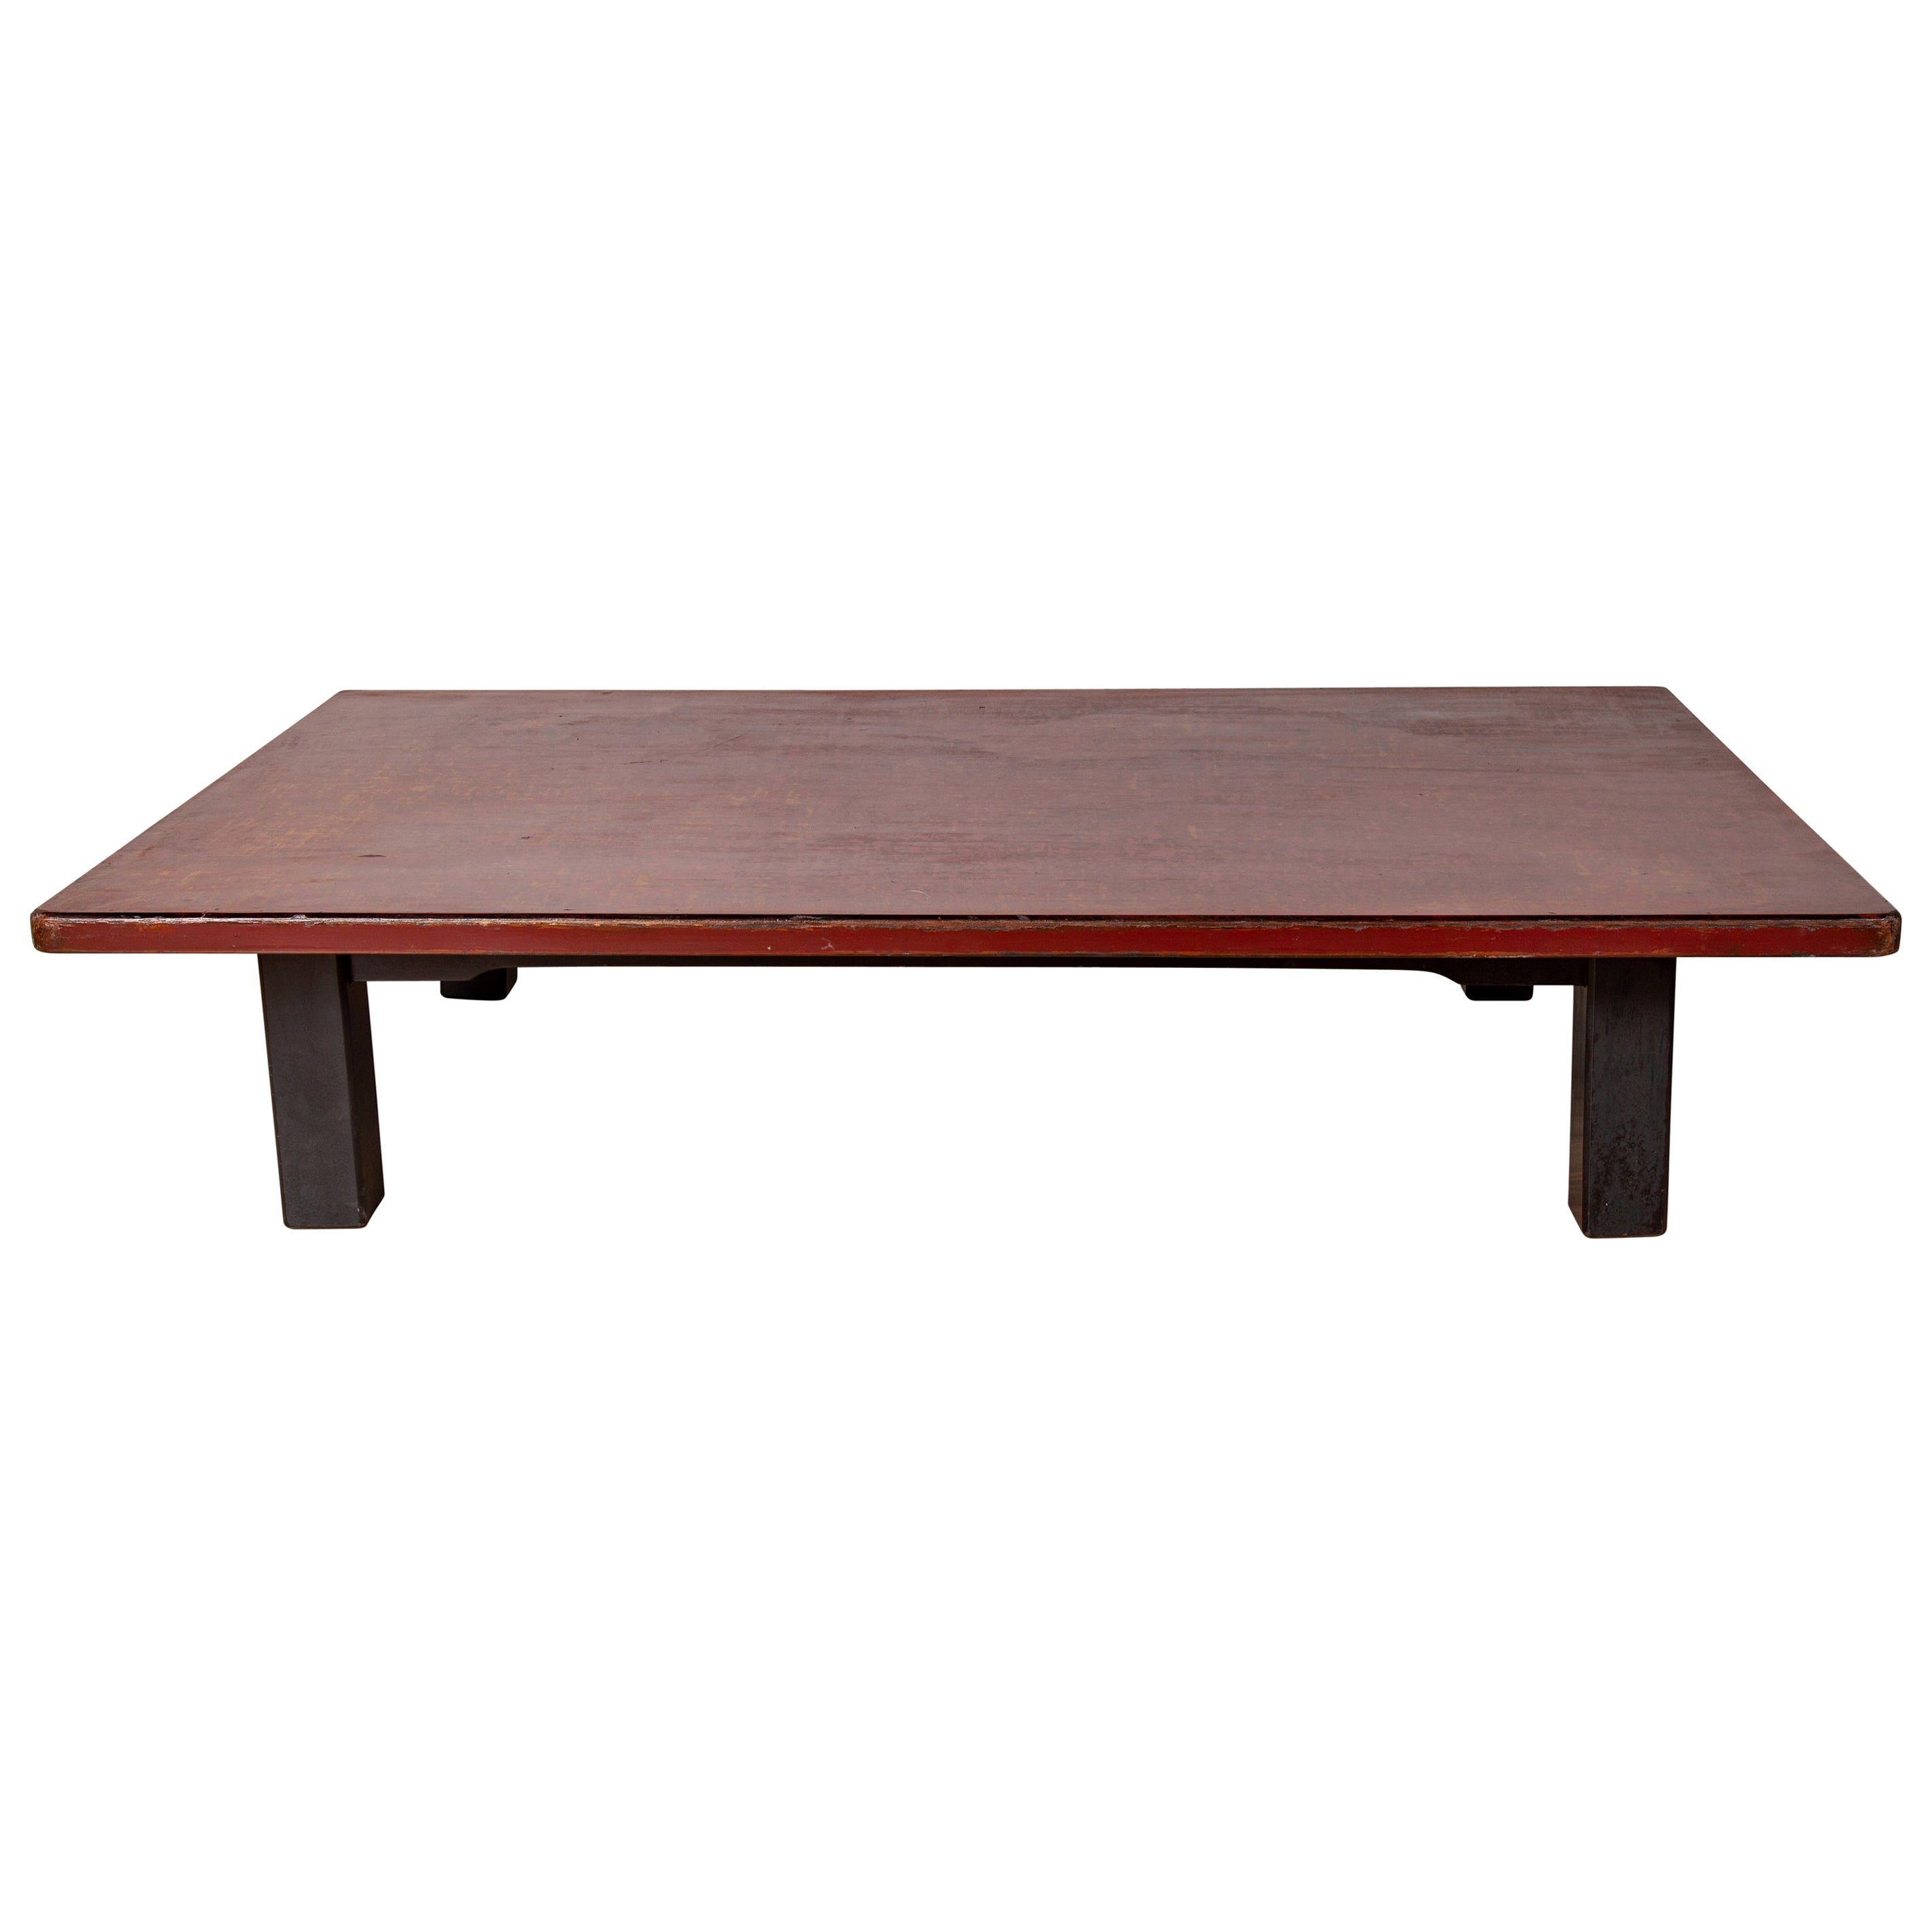 Japanese Taishō Period Early 20th Century Coffee Table with Negora Lacquer